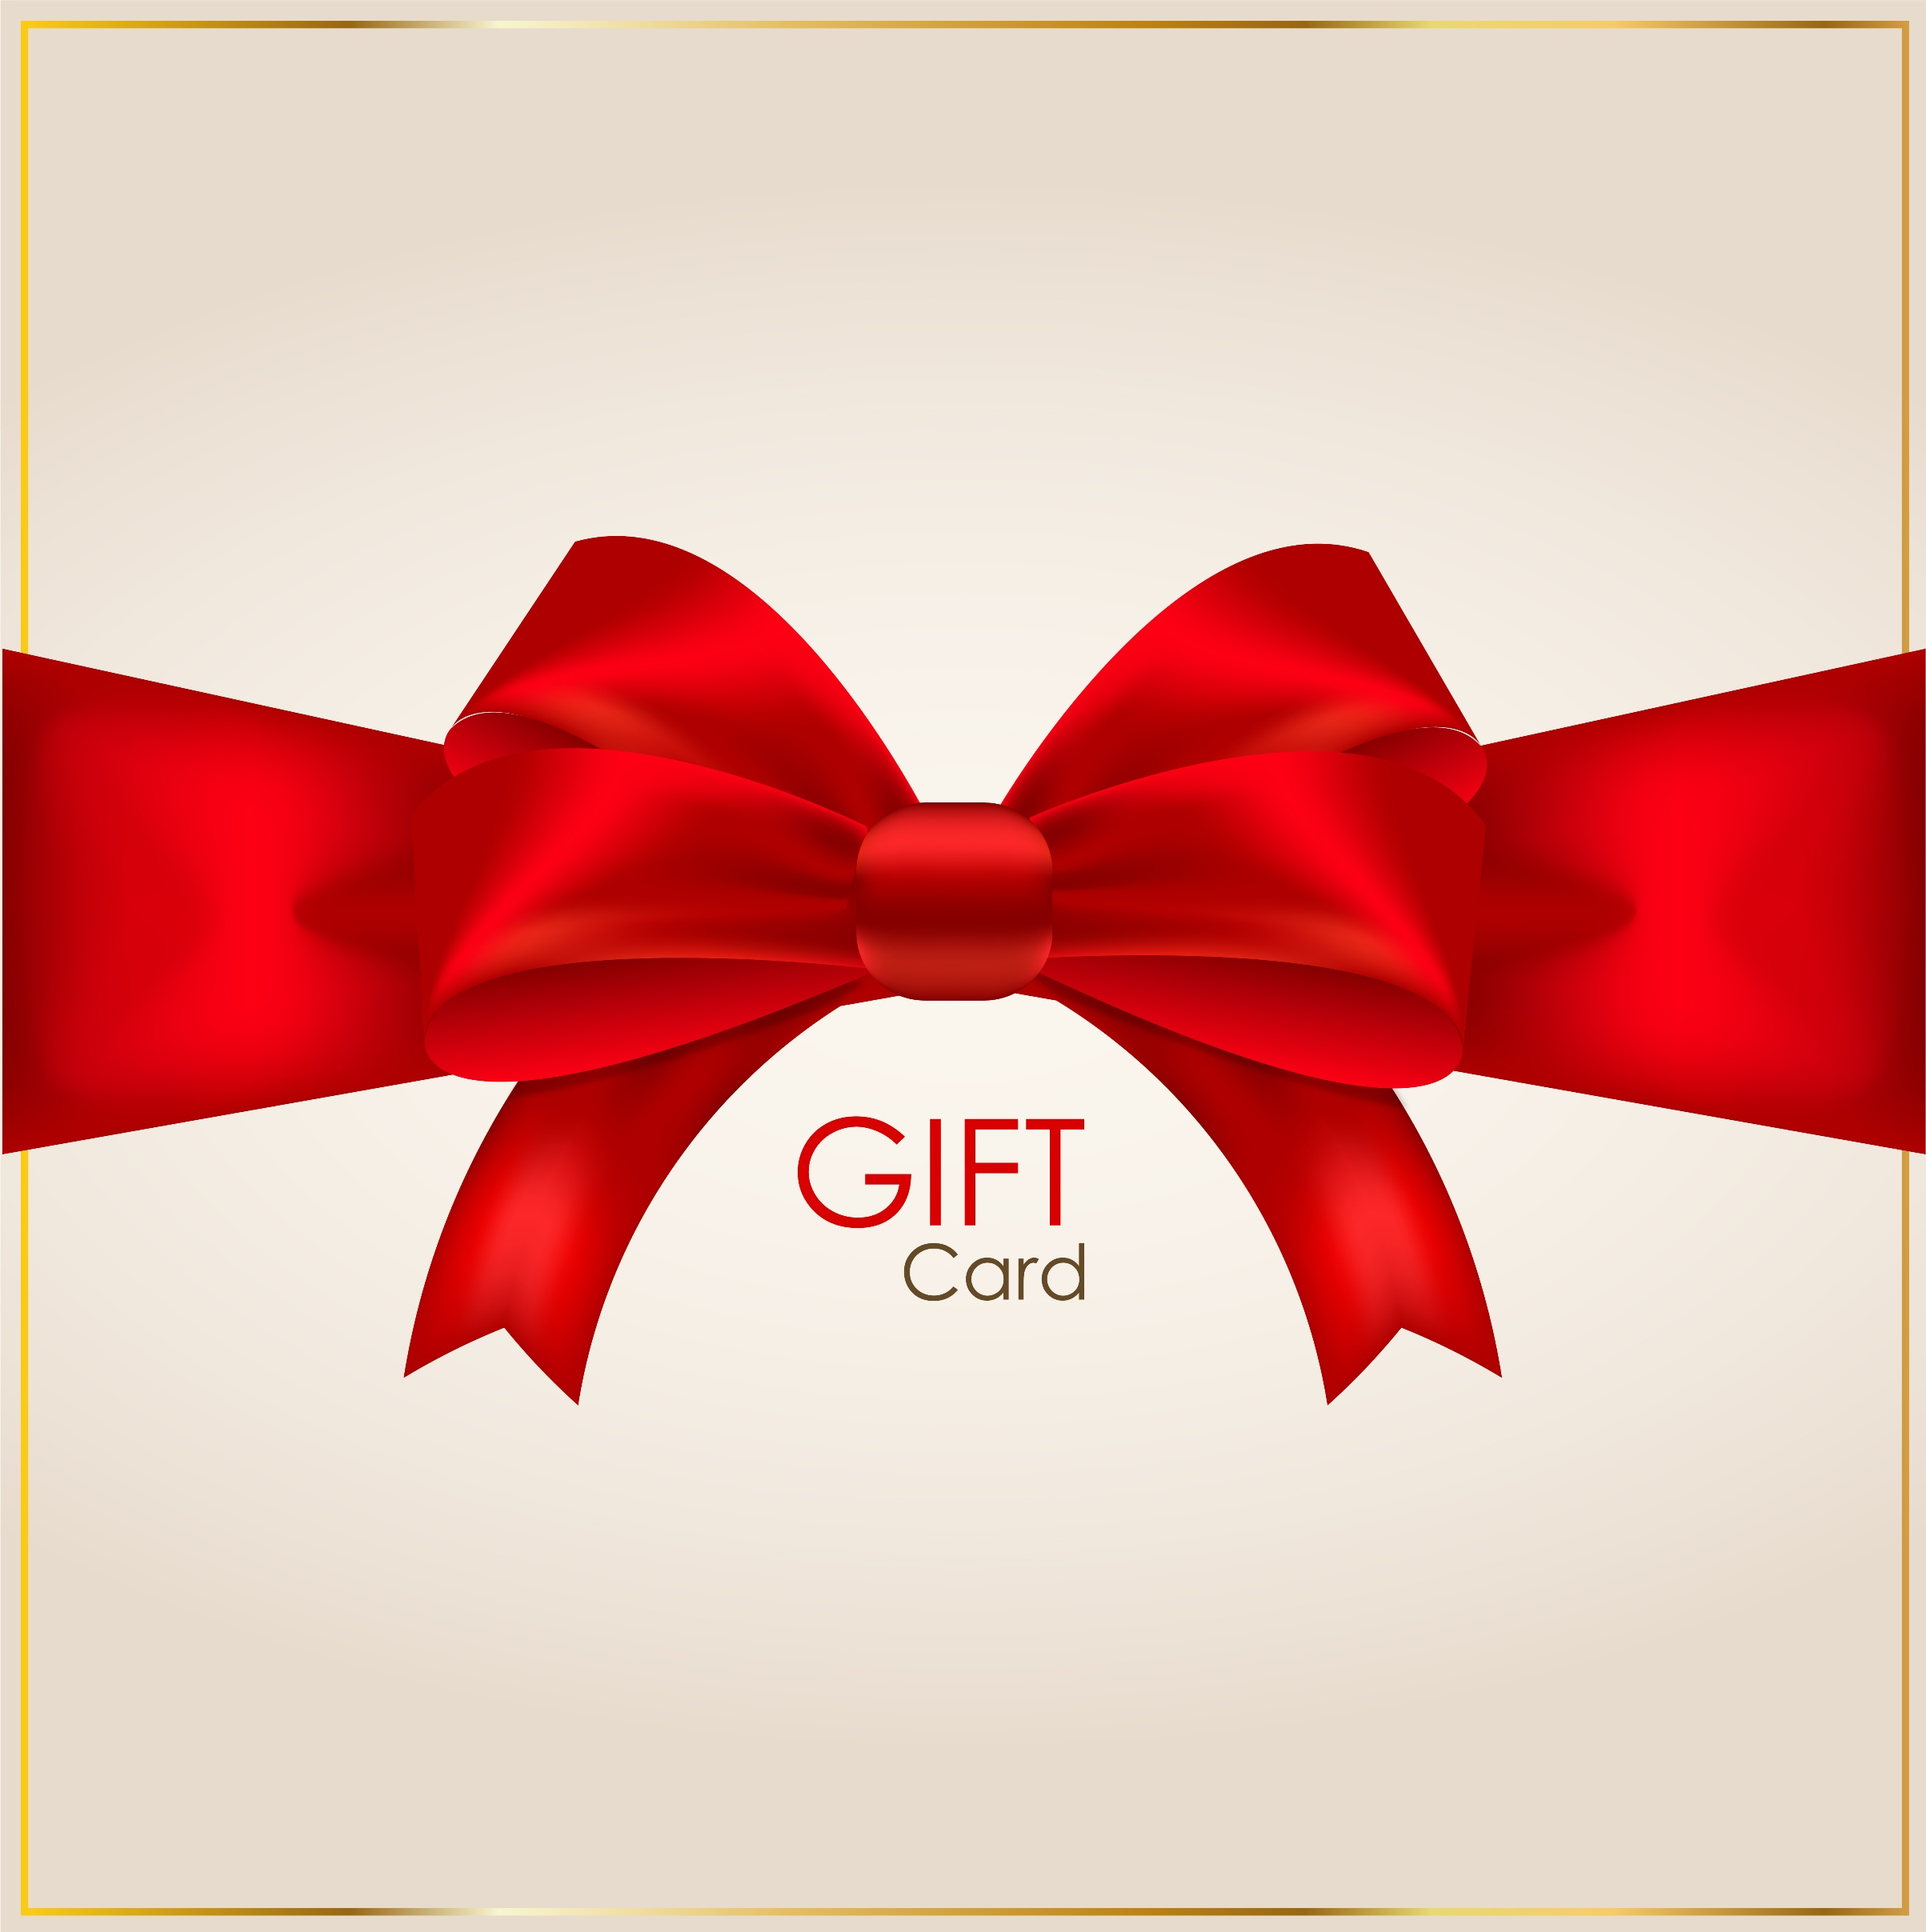 create a gift card for your business